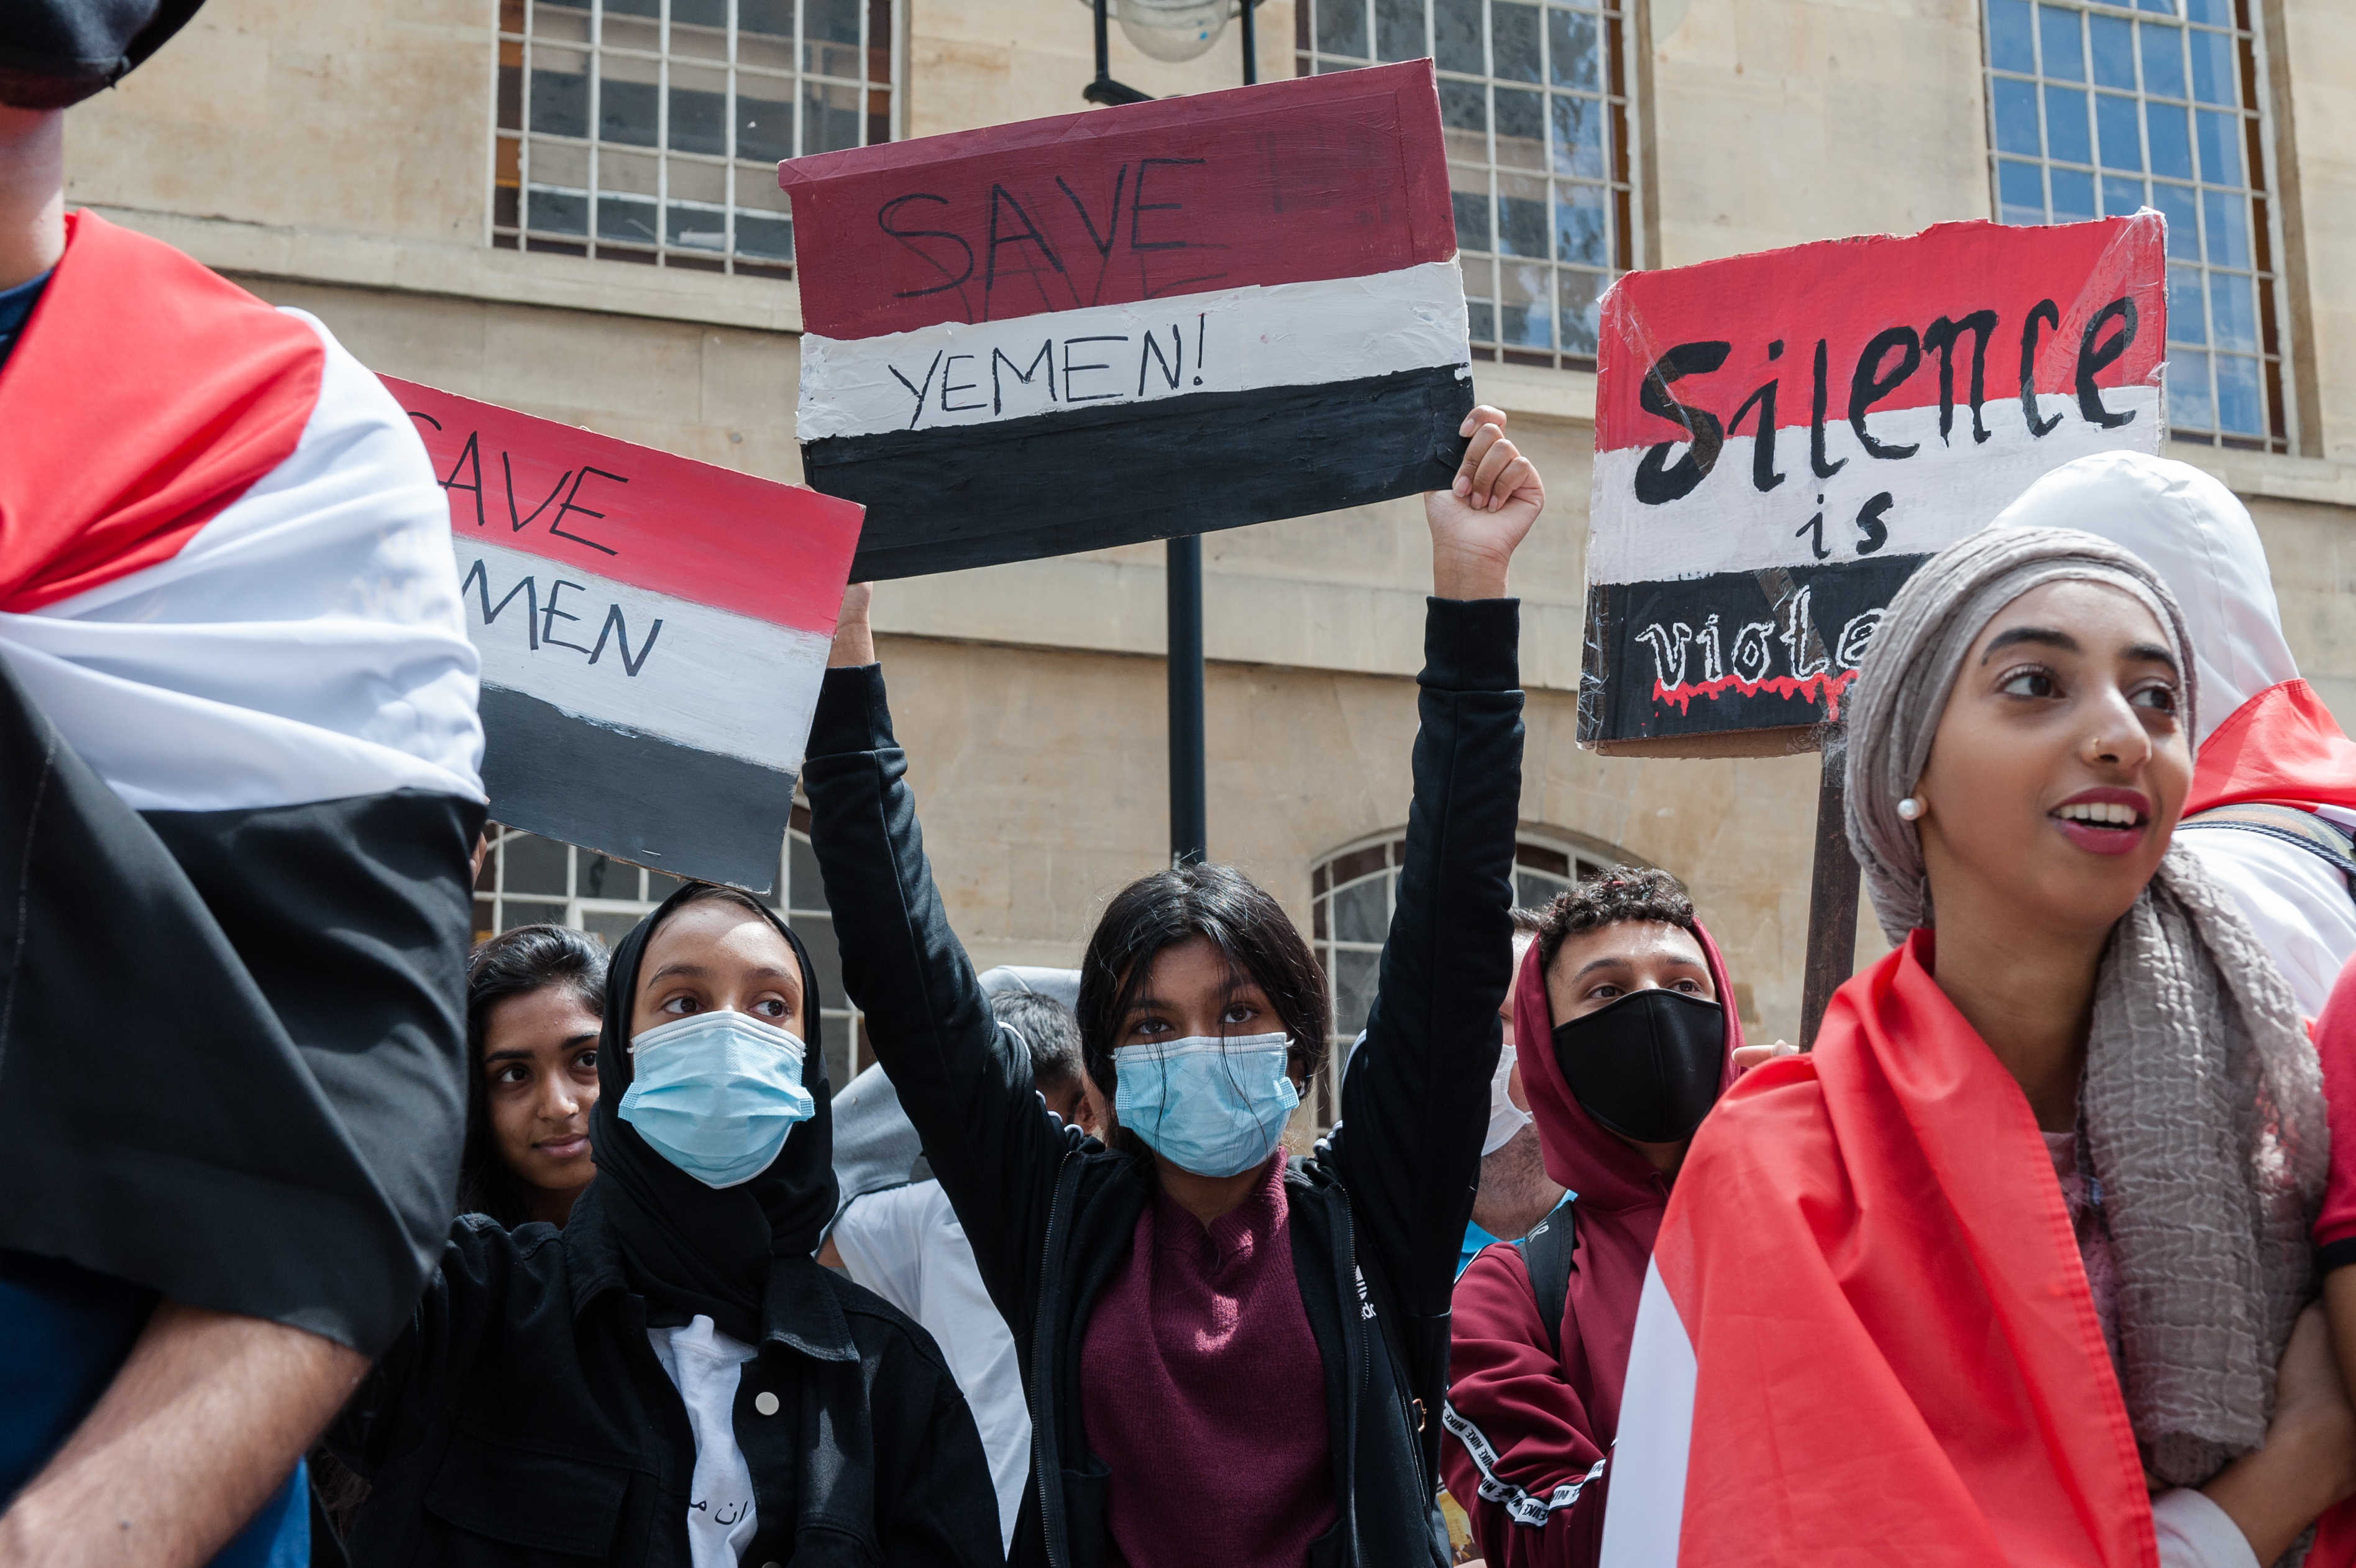 Demonstrators gather outside BBC Broadcasting House  for a march through central London in a protest against the ongoing conflict in Yemen, via the embassies of countries involved in the conflict - Saudi Arabia, United Arab Emirates and Iran on 12 July, 2020 in London, England. The UK is set to resume arms sales to Saudi Arabia, which were suspended last year after a legal challenge brought by campaigners, despite concerns they could be used against civilians in Yemen and therefore in violation of international humanitarian law. (Photo by WIktor Szymanowicz/NurPhoto via Getty Images)